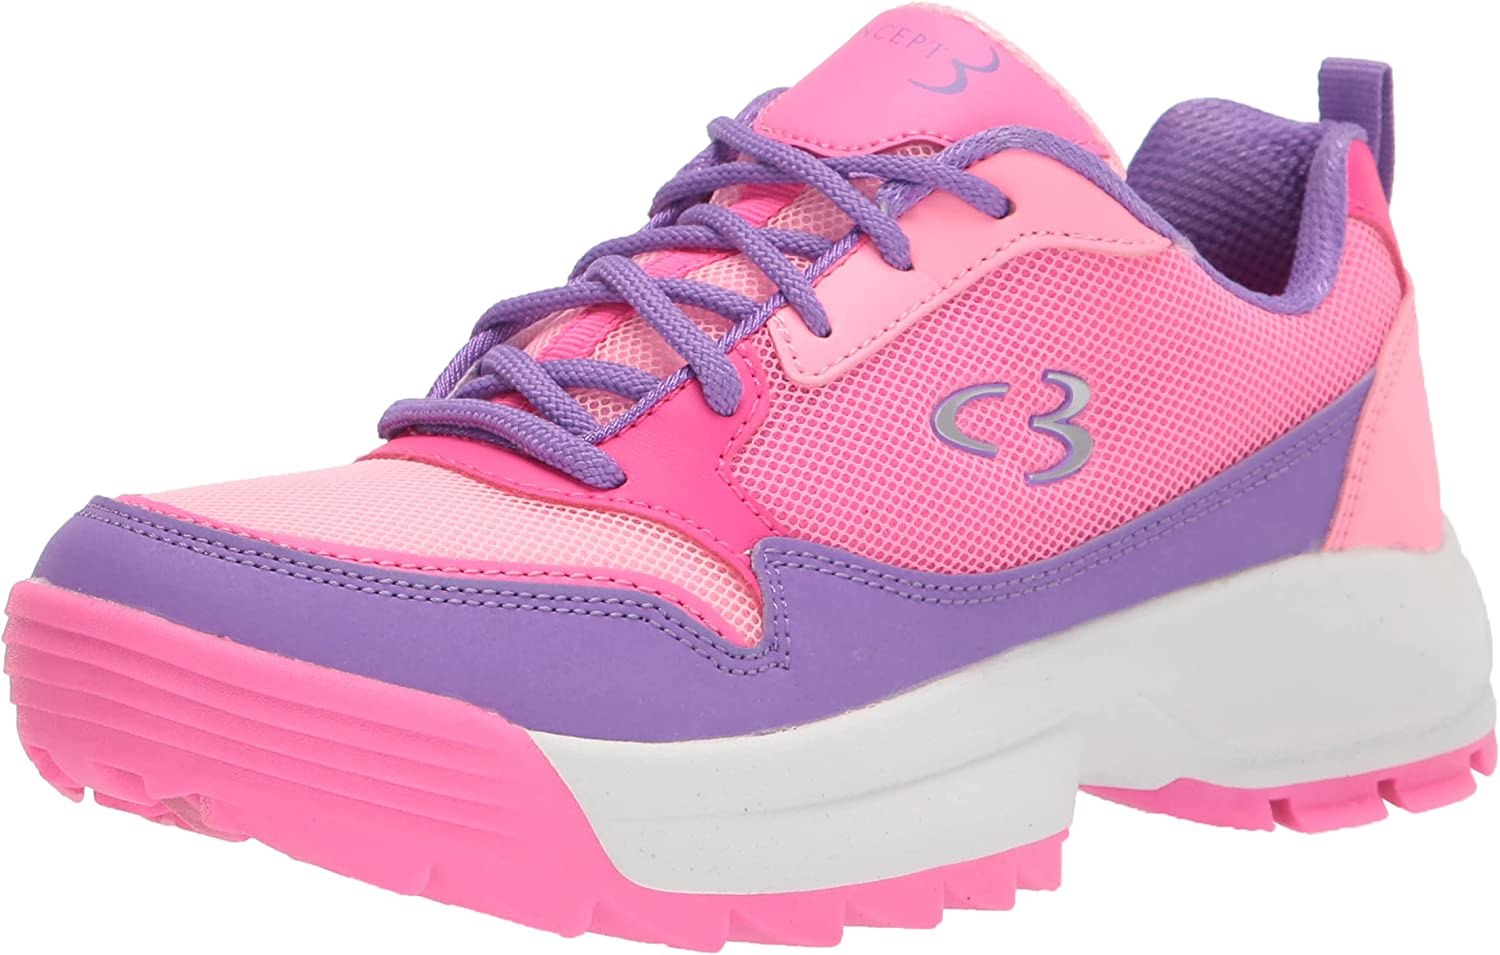 Ranking TOP10 Max 41% OFF Concept 3 by Skechers Sneaker Unisex-Child Lace-up On-it